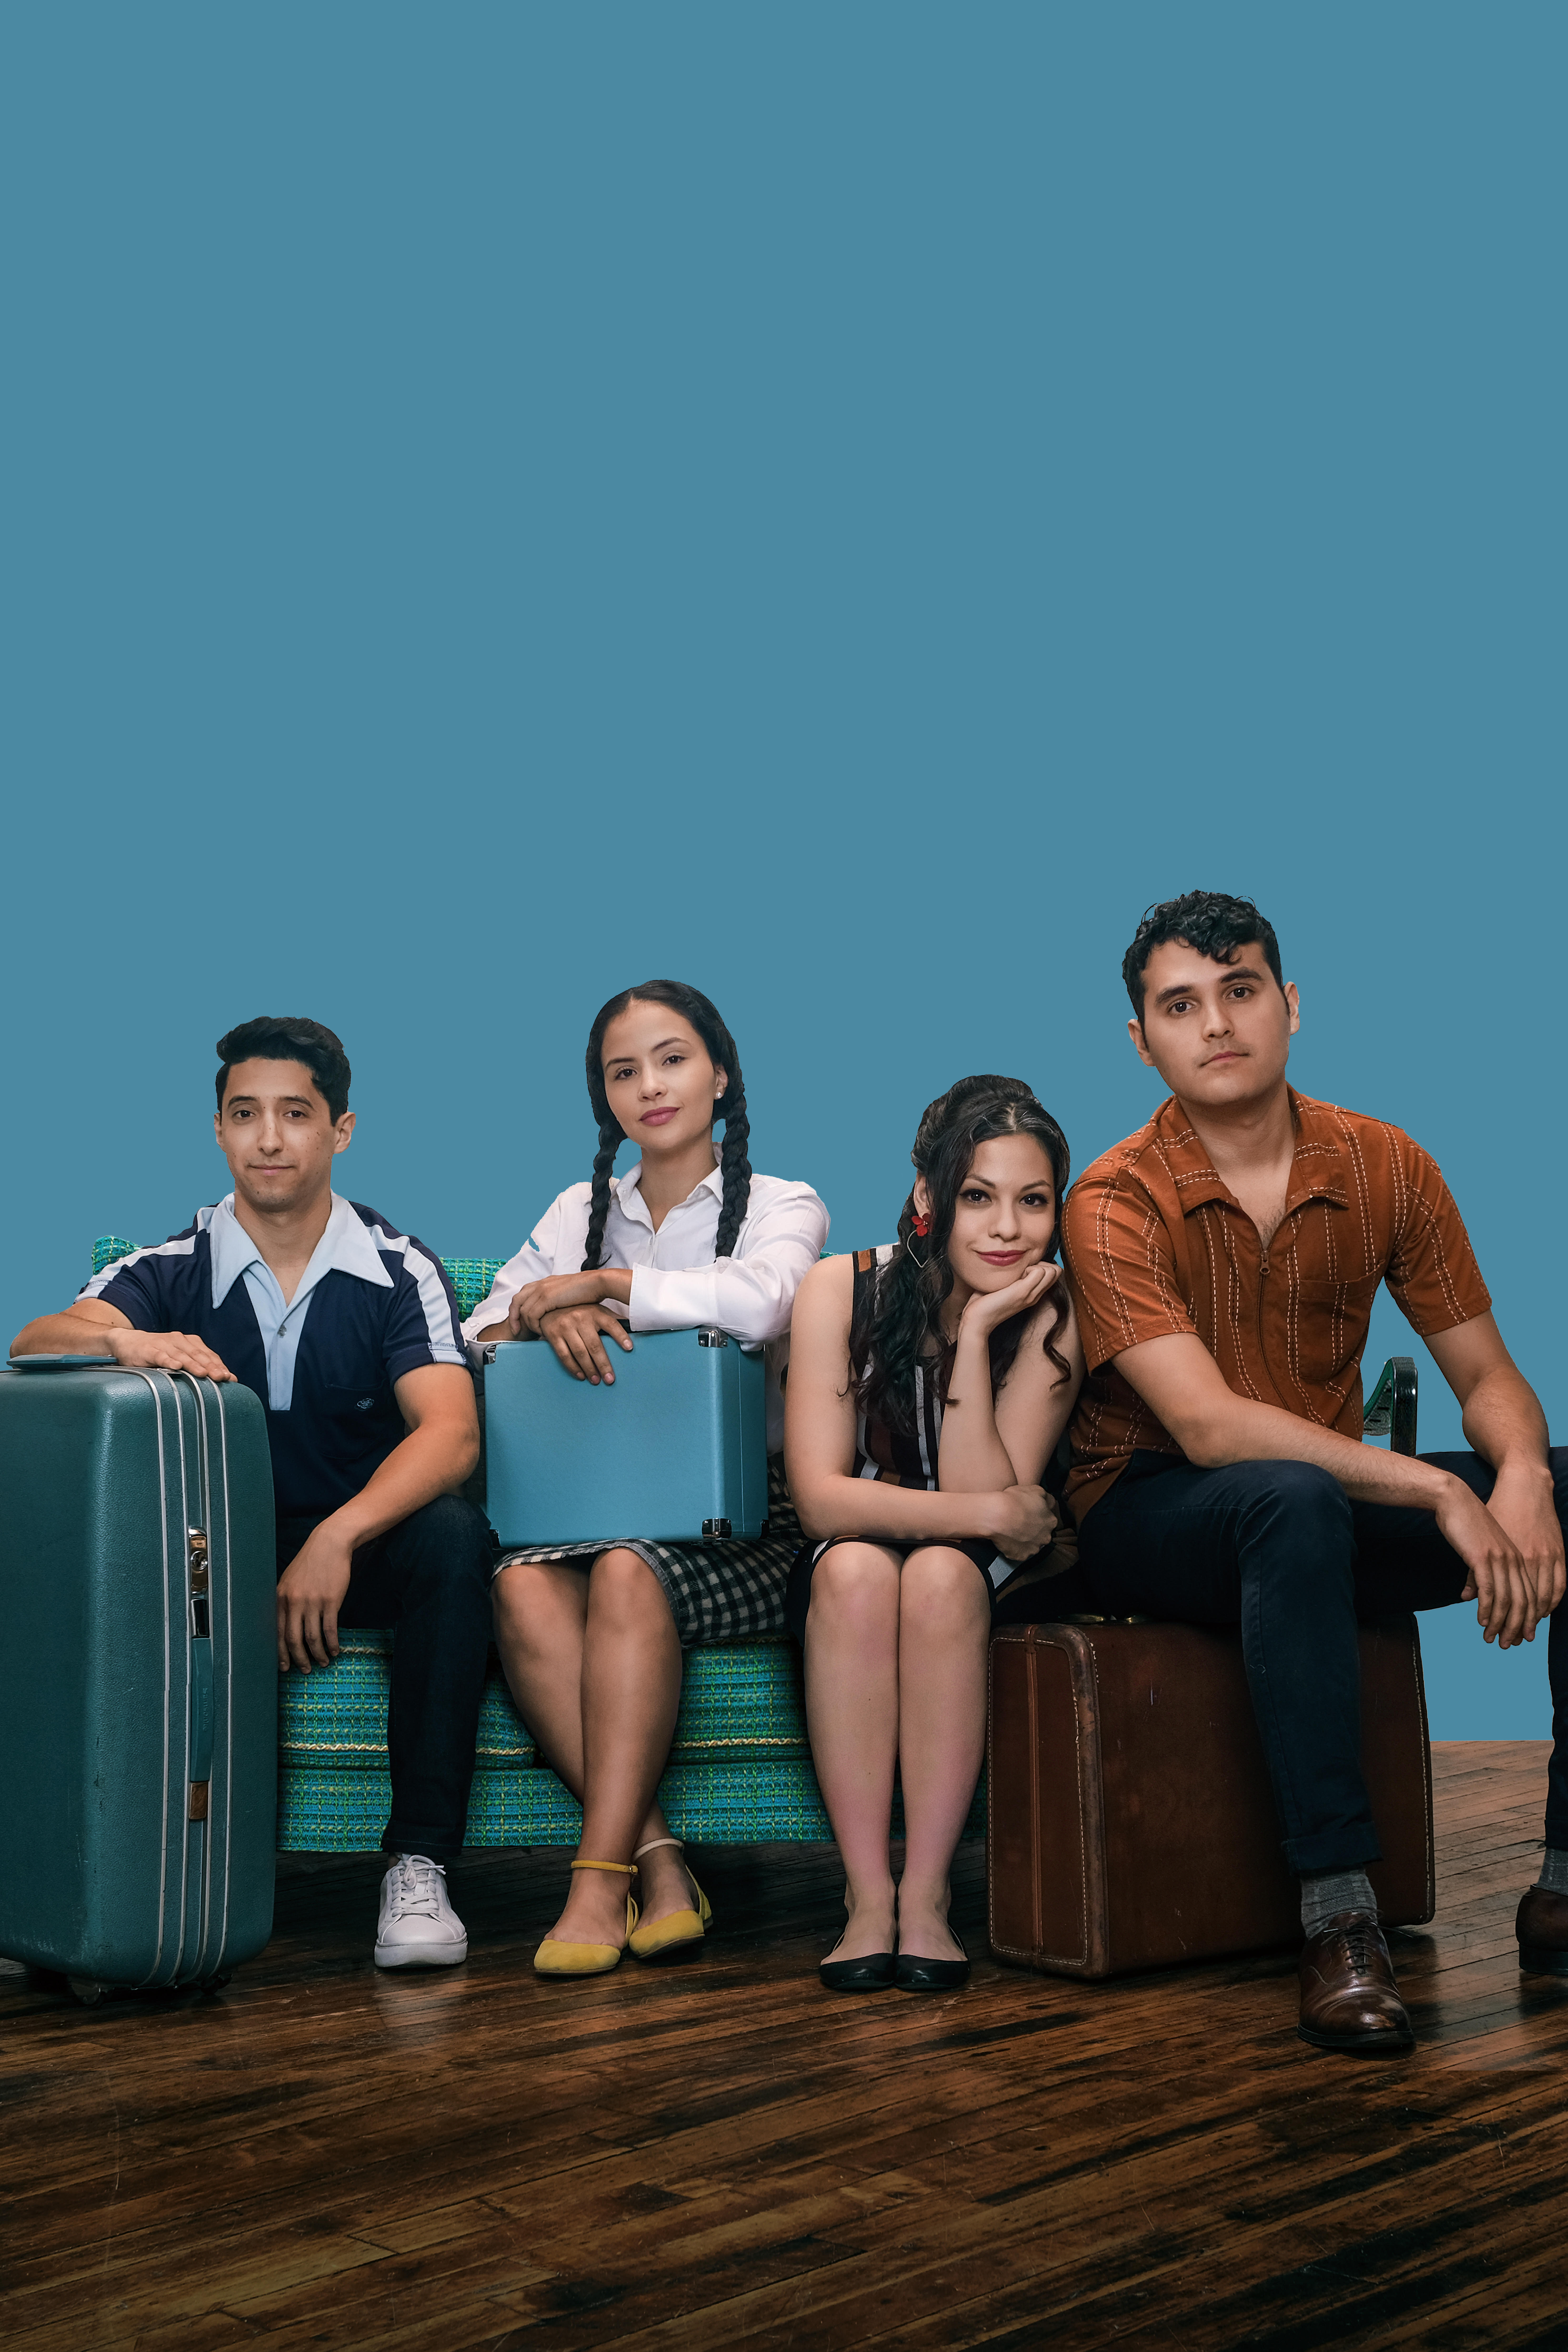 """Meet the Morales siblings — Bobby (Joaquin Rodarte from left), Betty (Janyce Caraballo), Gina (Ayssette Muñoz) and Johnny (Nick Mayes) — members of a Mexican-American family in '60s America in Teatro Vista's Midwest premiere of """"Hope: Part II of A Mexican"""